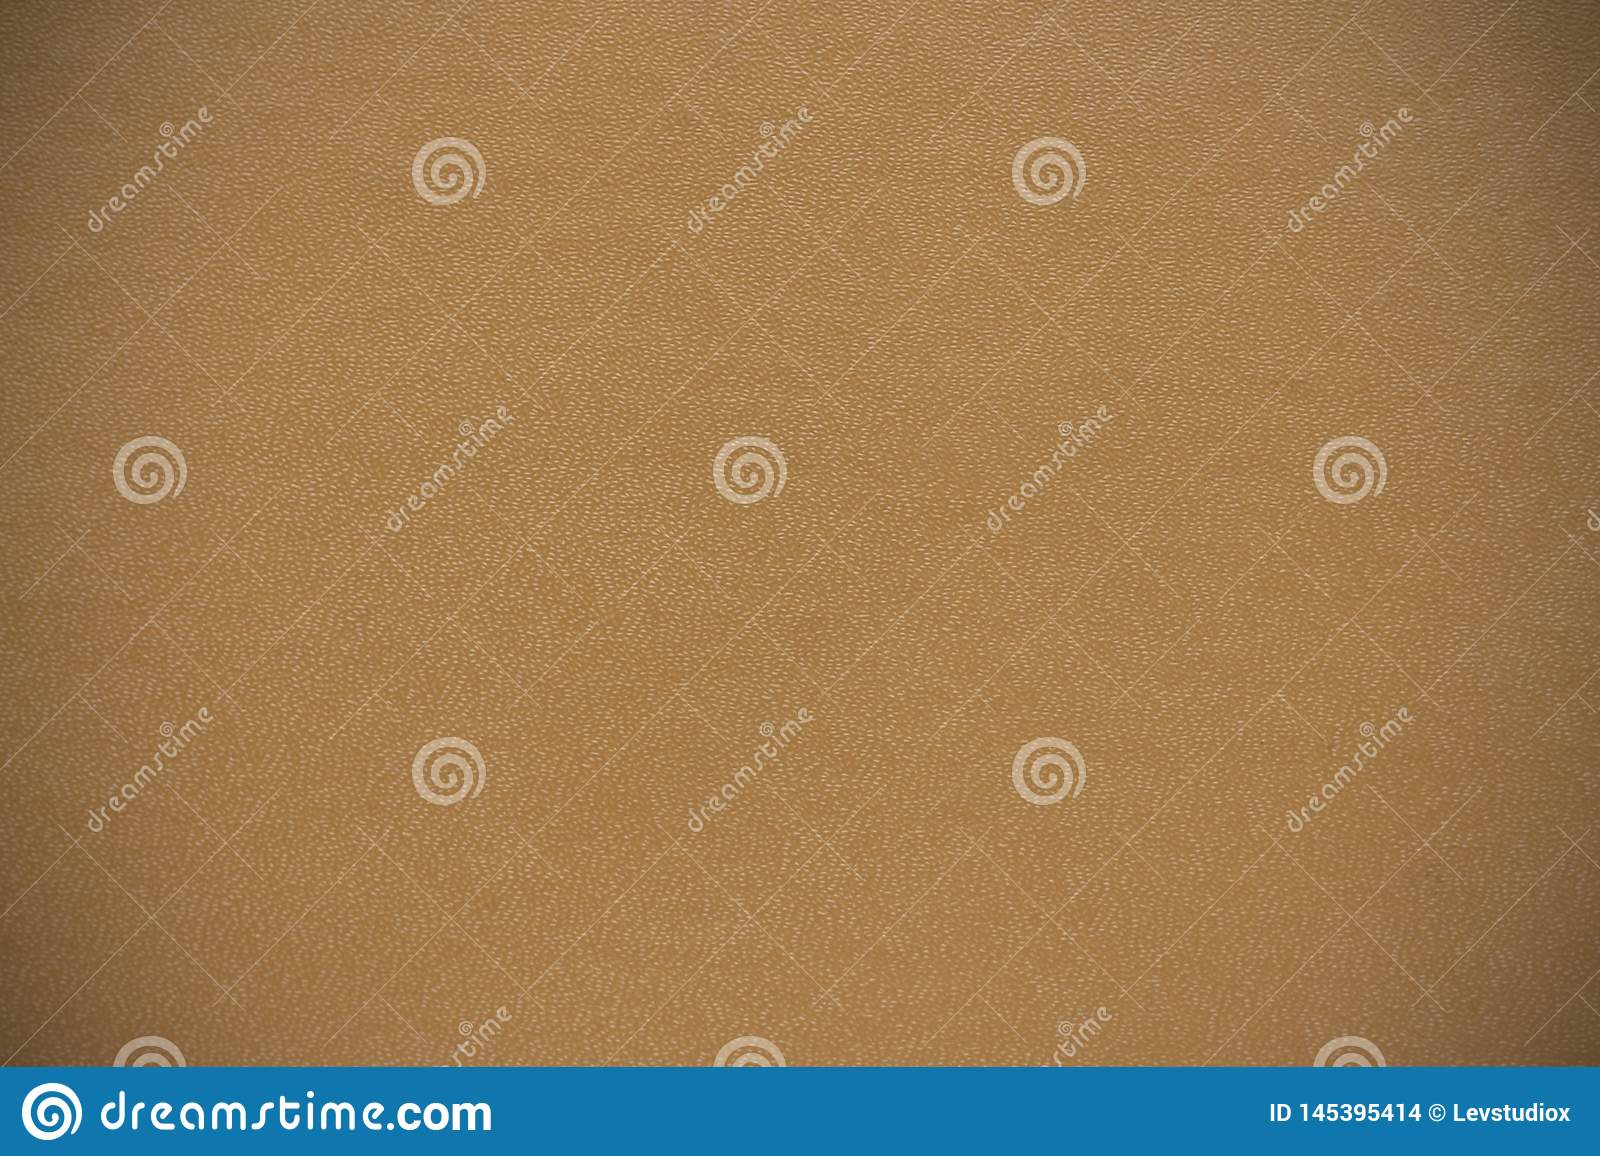 The background texture is made from the book cover beige vignette